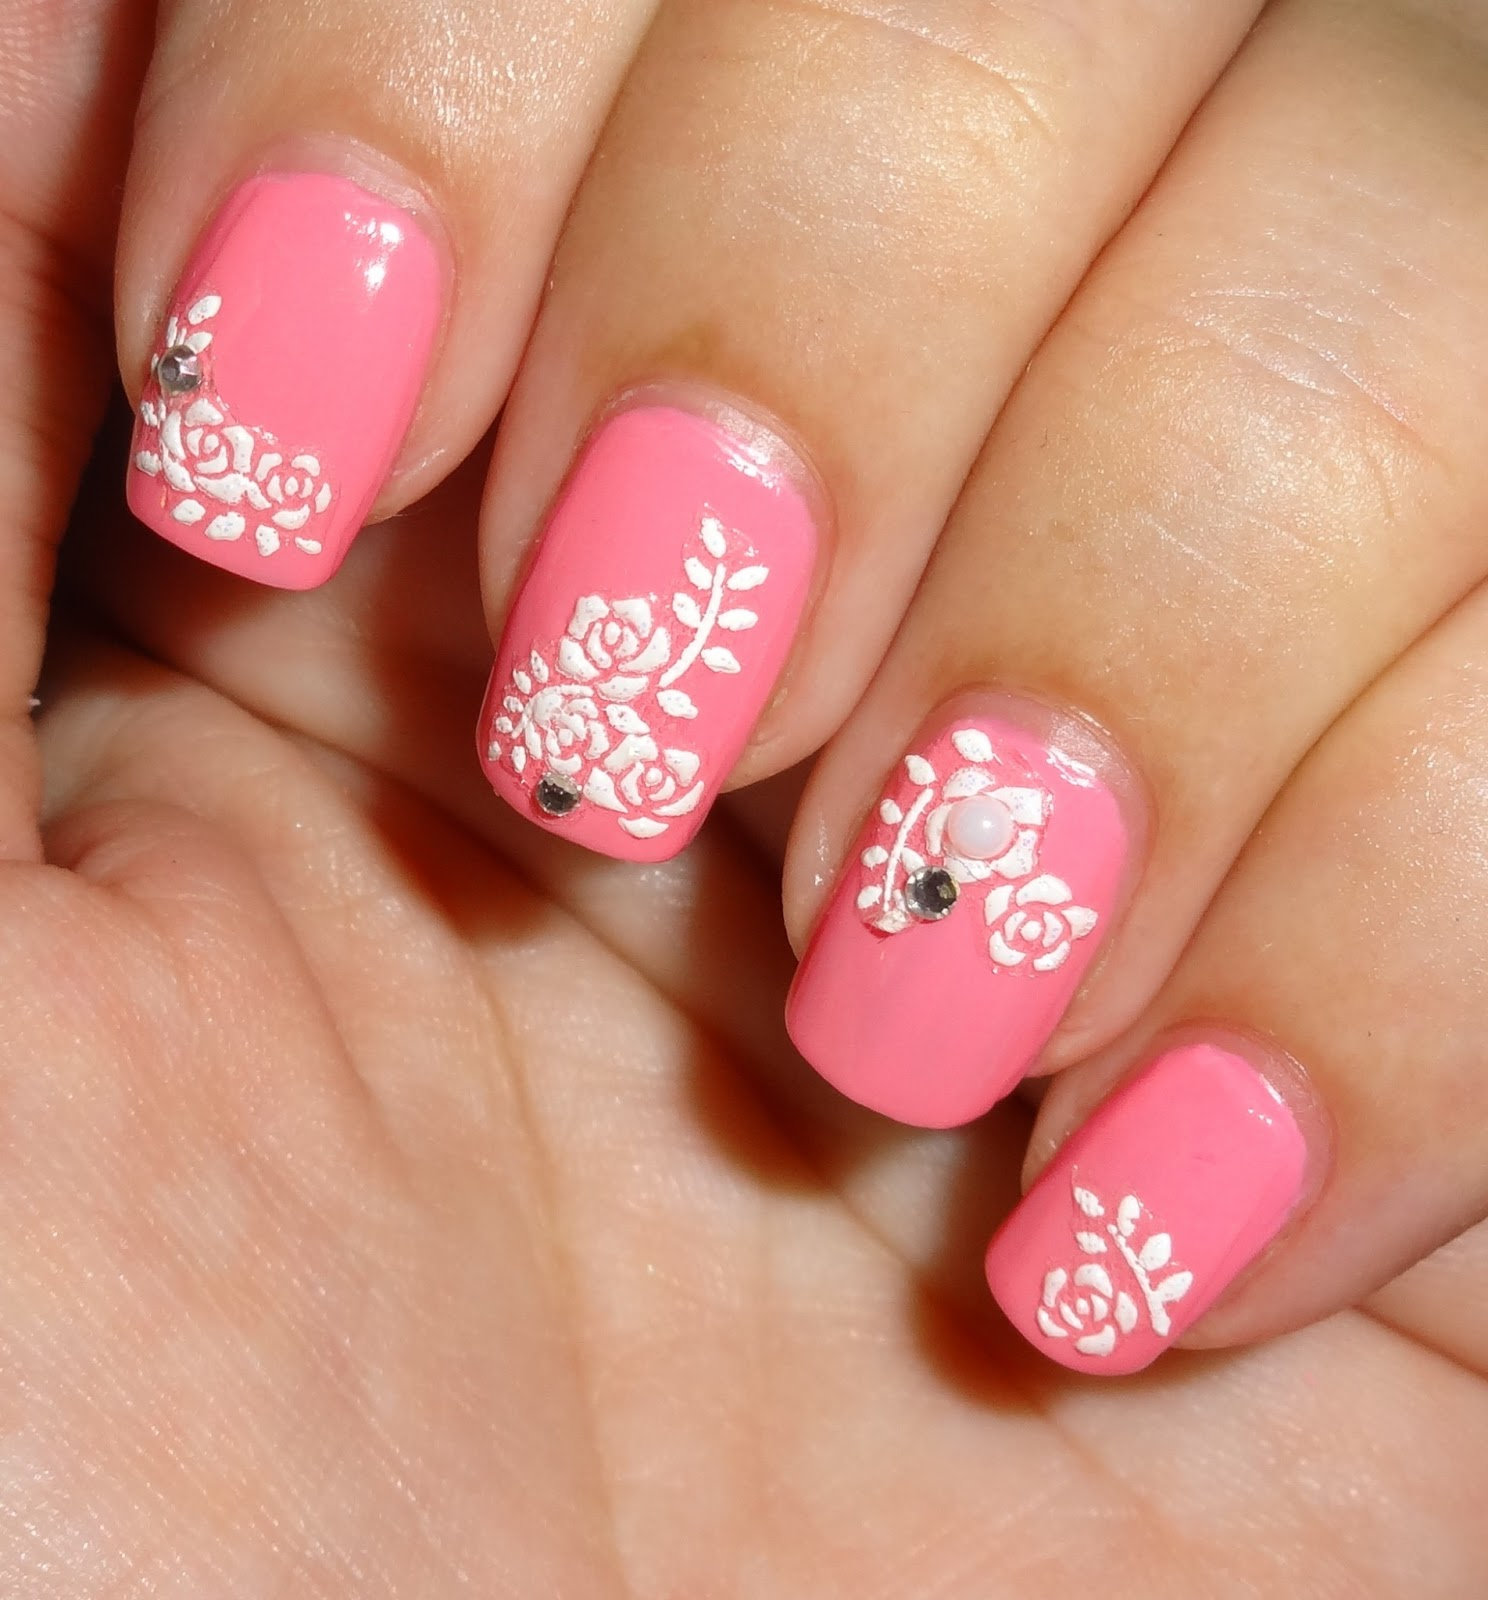 Nail stickers